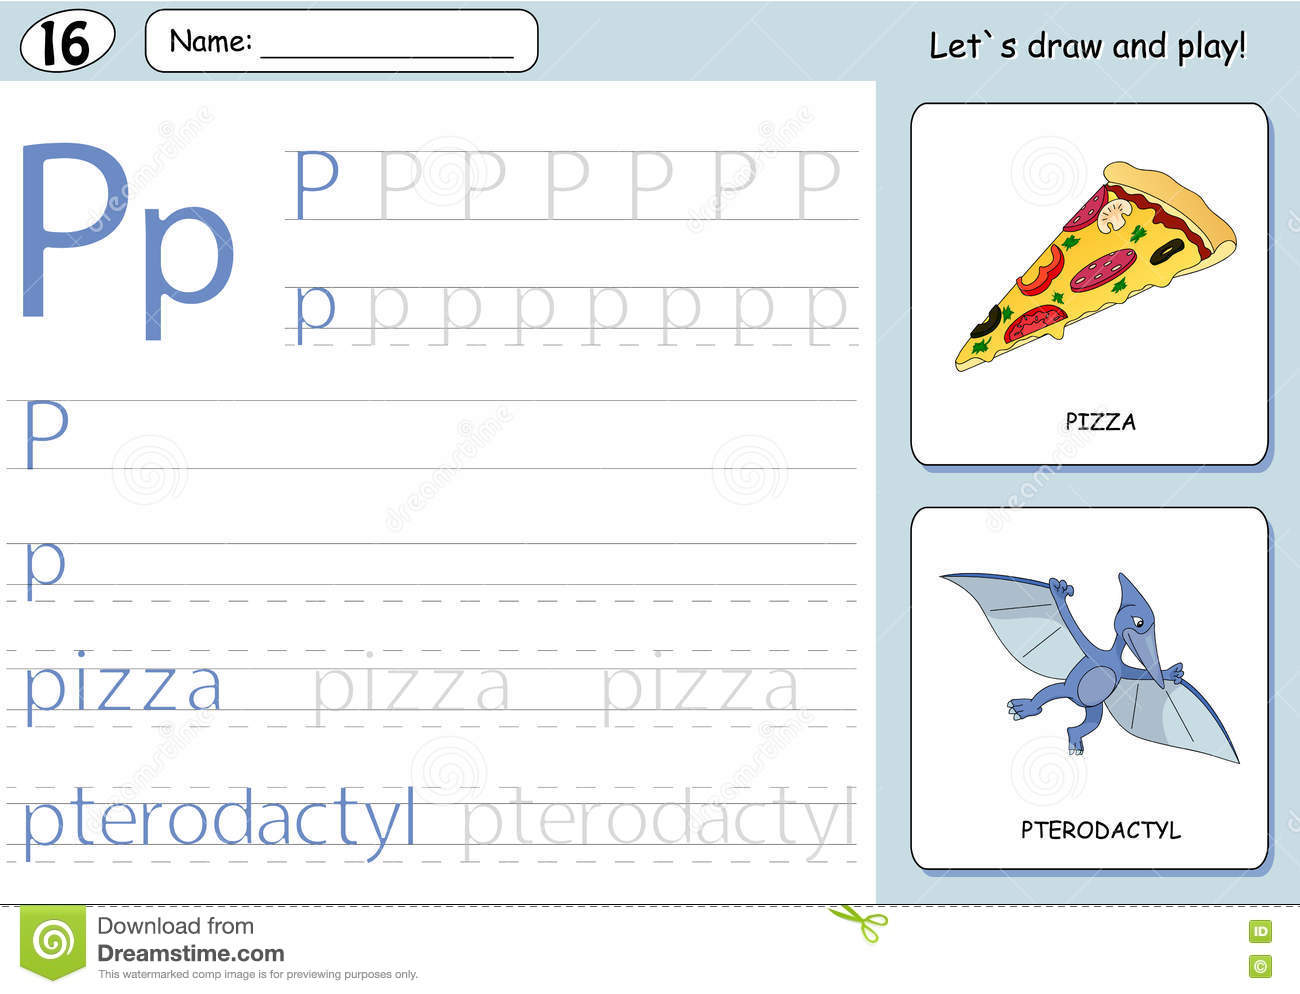 Cartoon Pizza And Pterodactyl Alphabet Tracing Worksheet